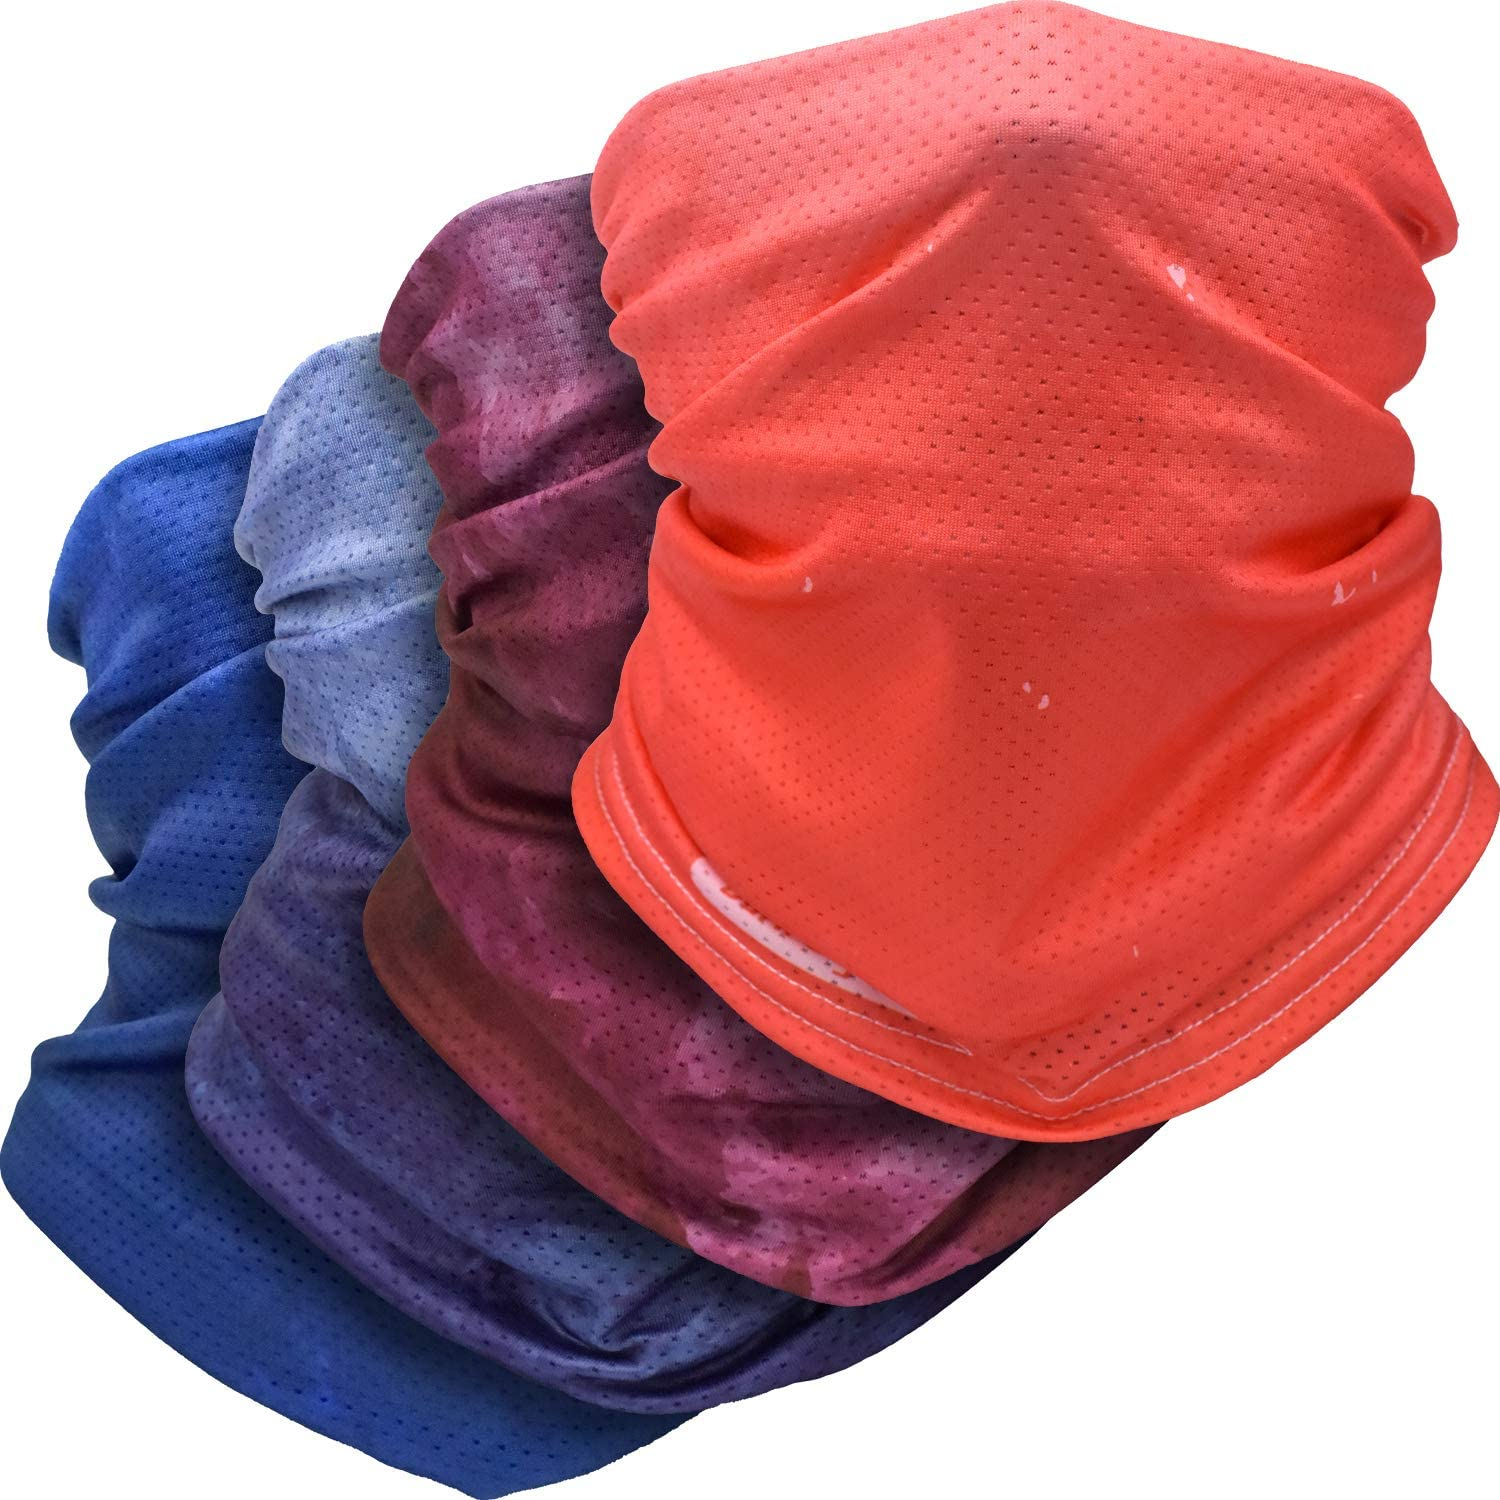 Cooling Neck Gaiter 12+ Ways to Wears,Dust Face Mask, UV Protection,Fast Cooling When Wet,Cooling Bandana